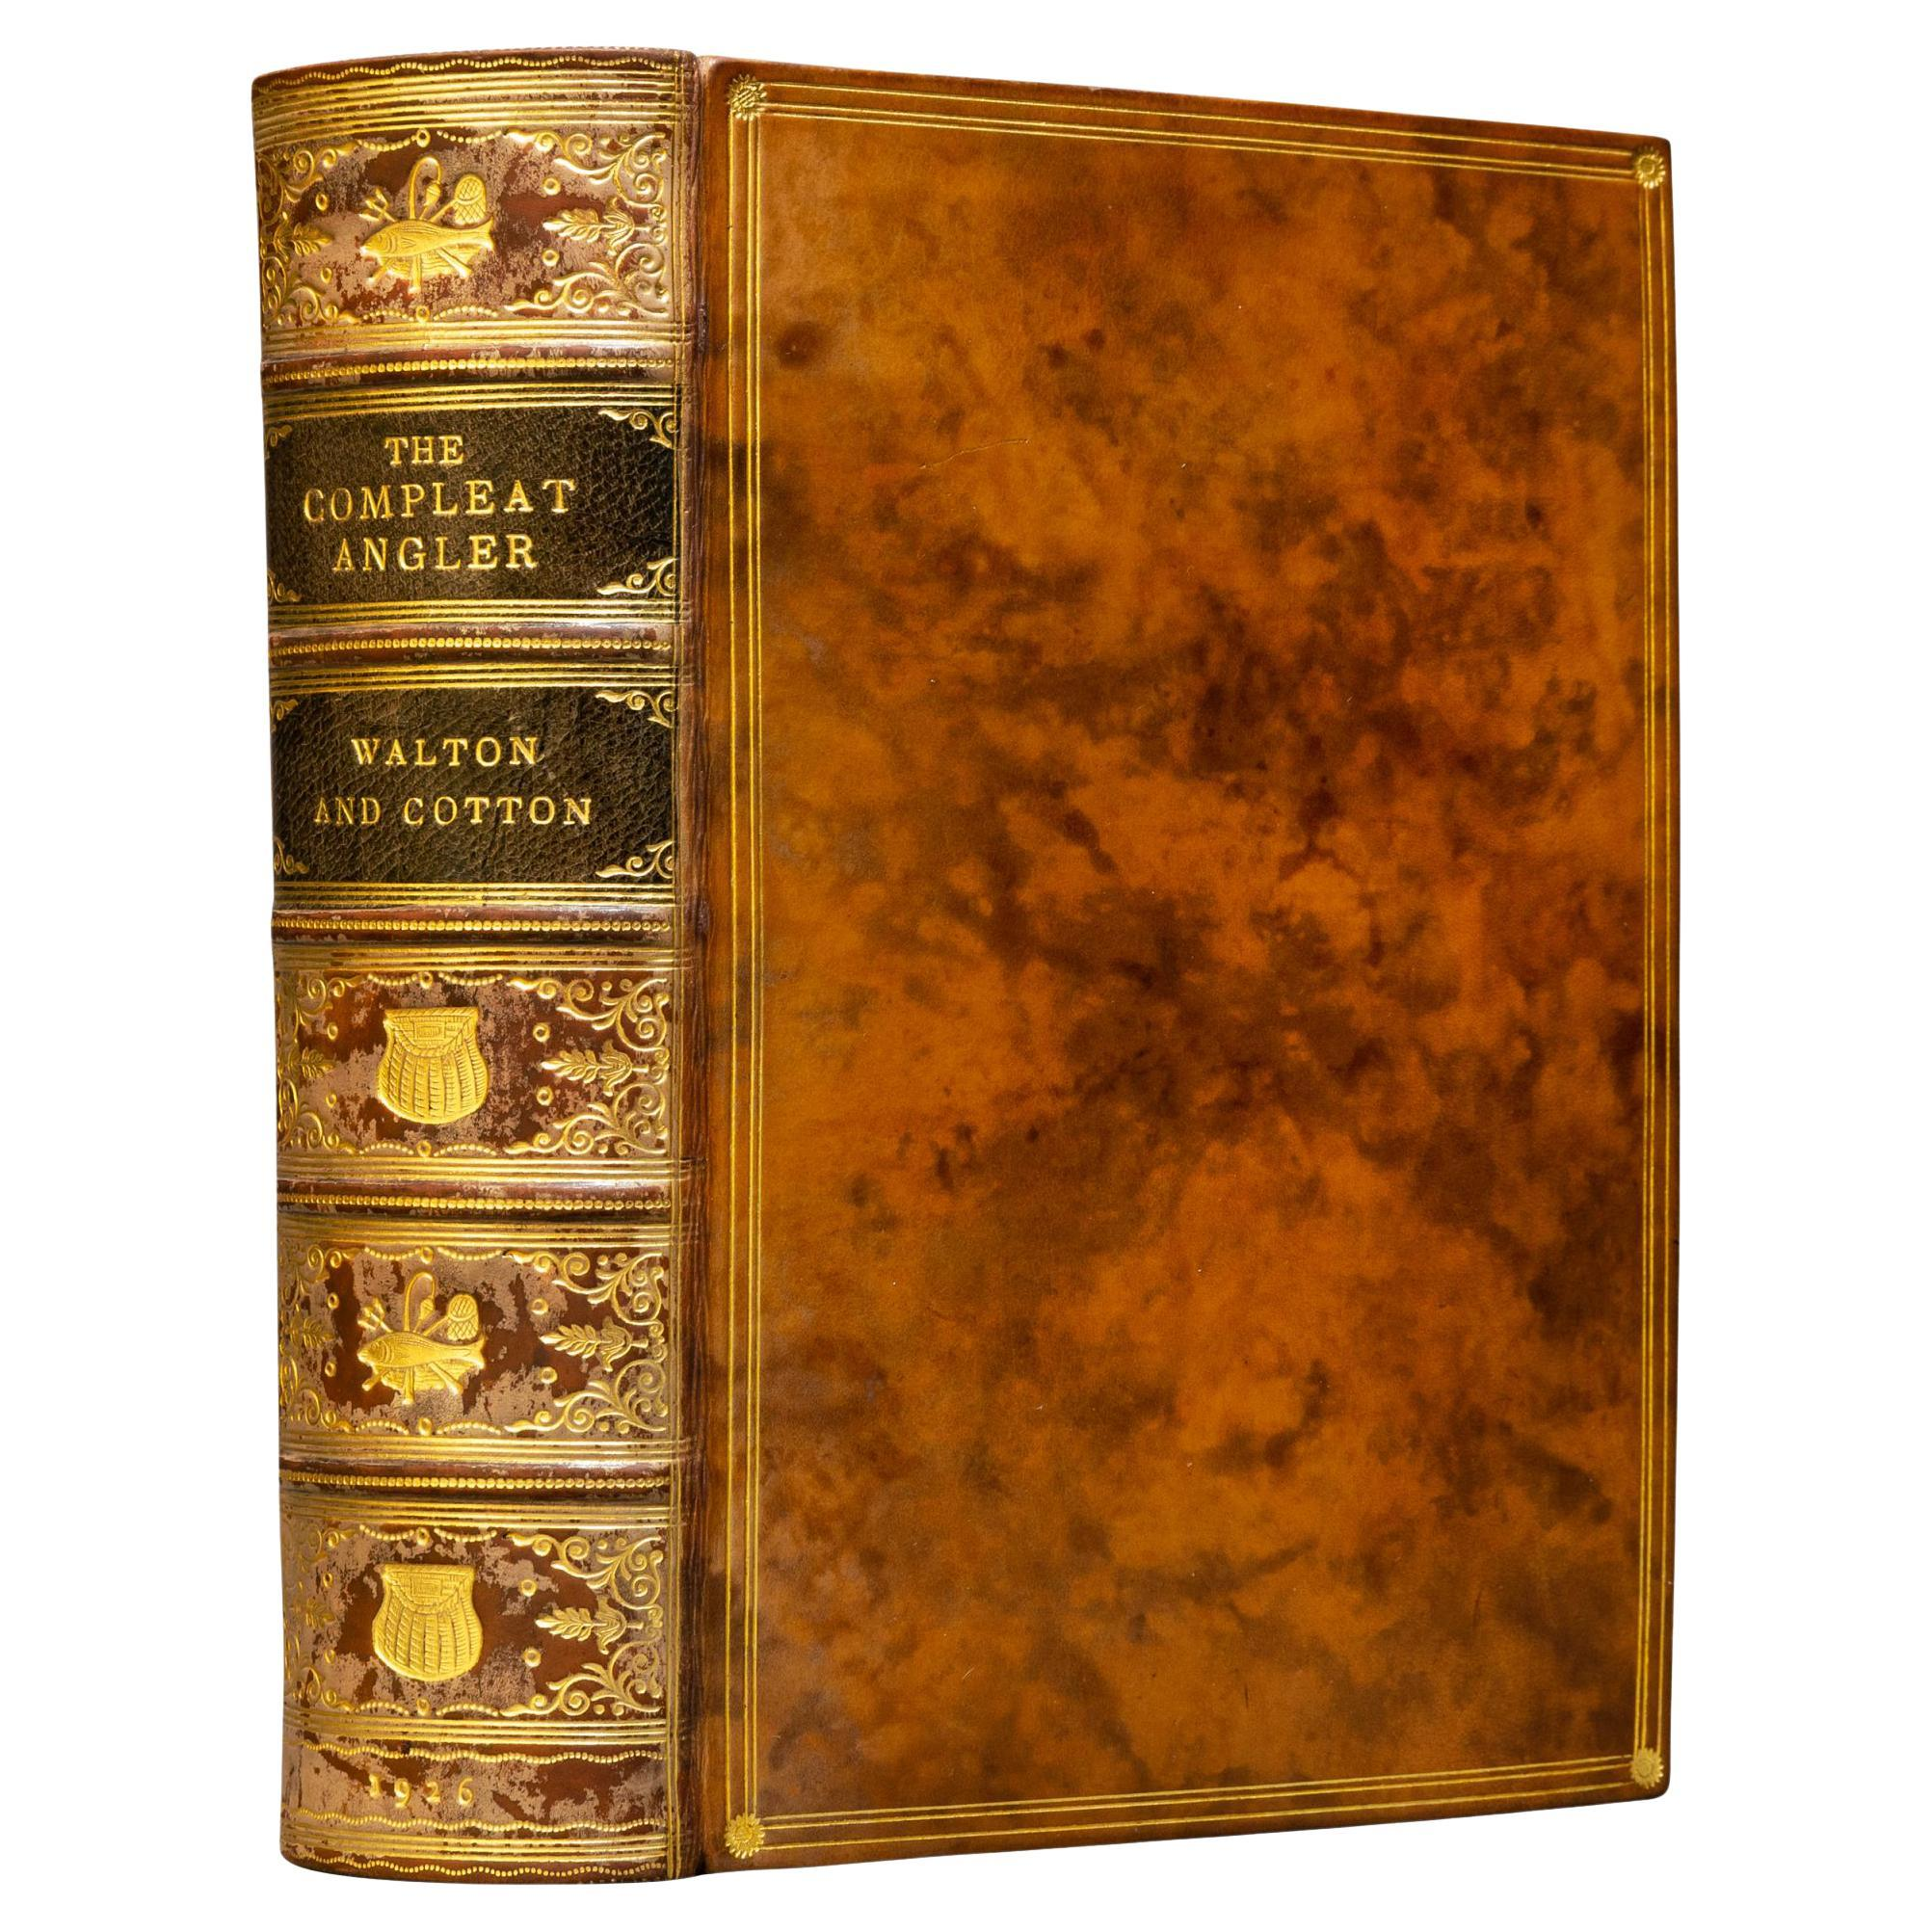 'Book Sets' 1 Volume, Izaak Walton & Charles Cotton, The Compleat Angler